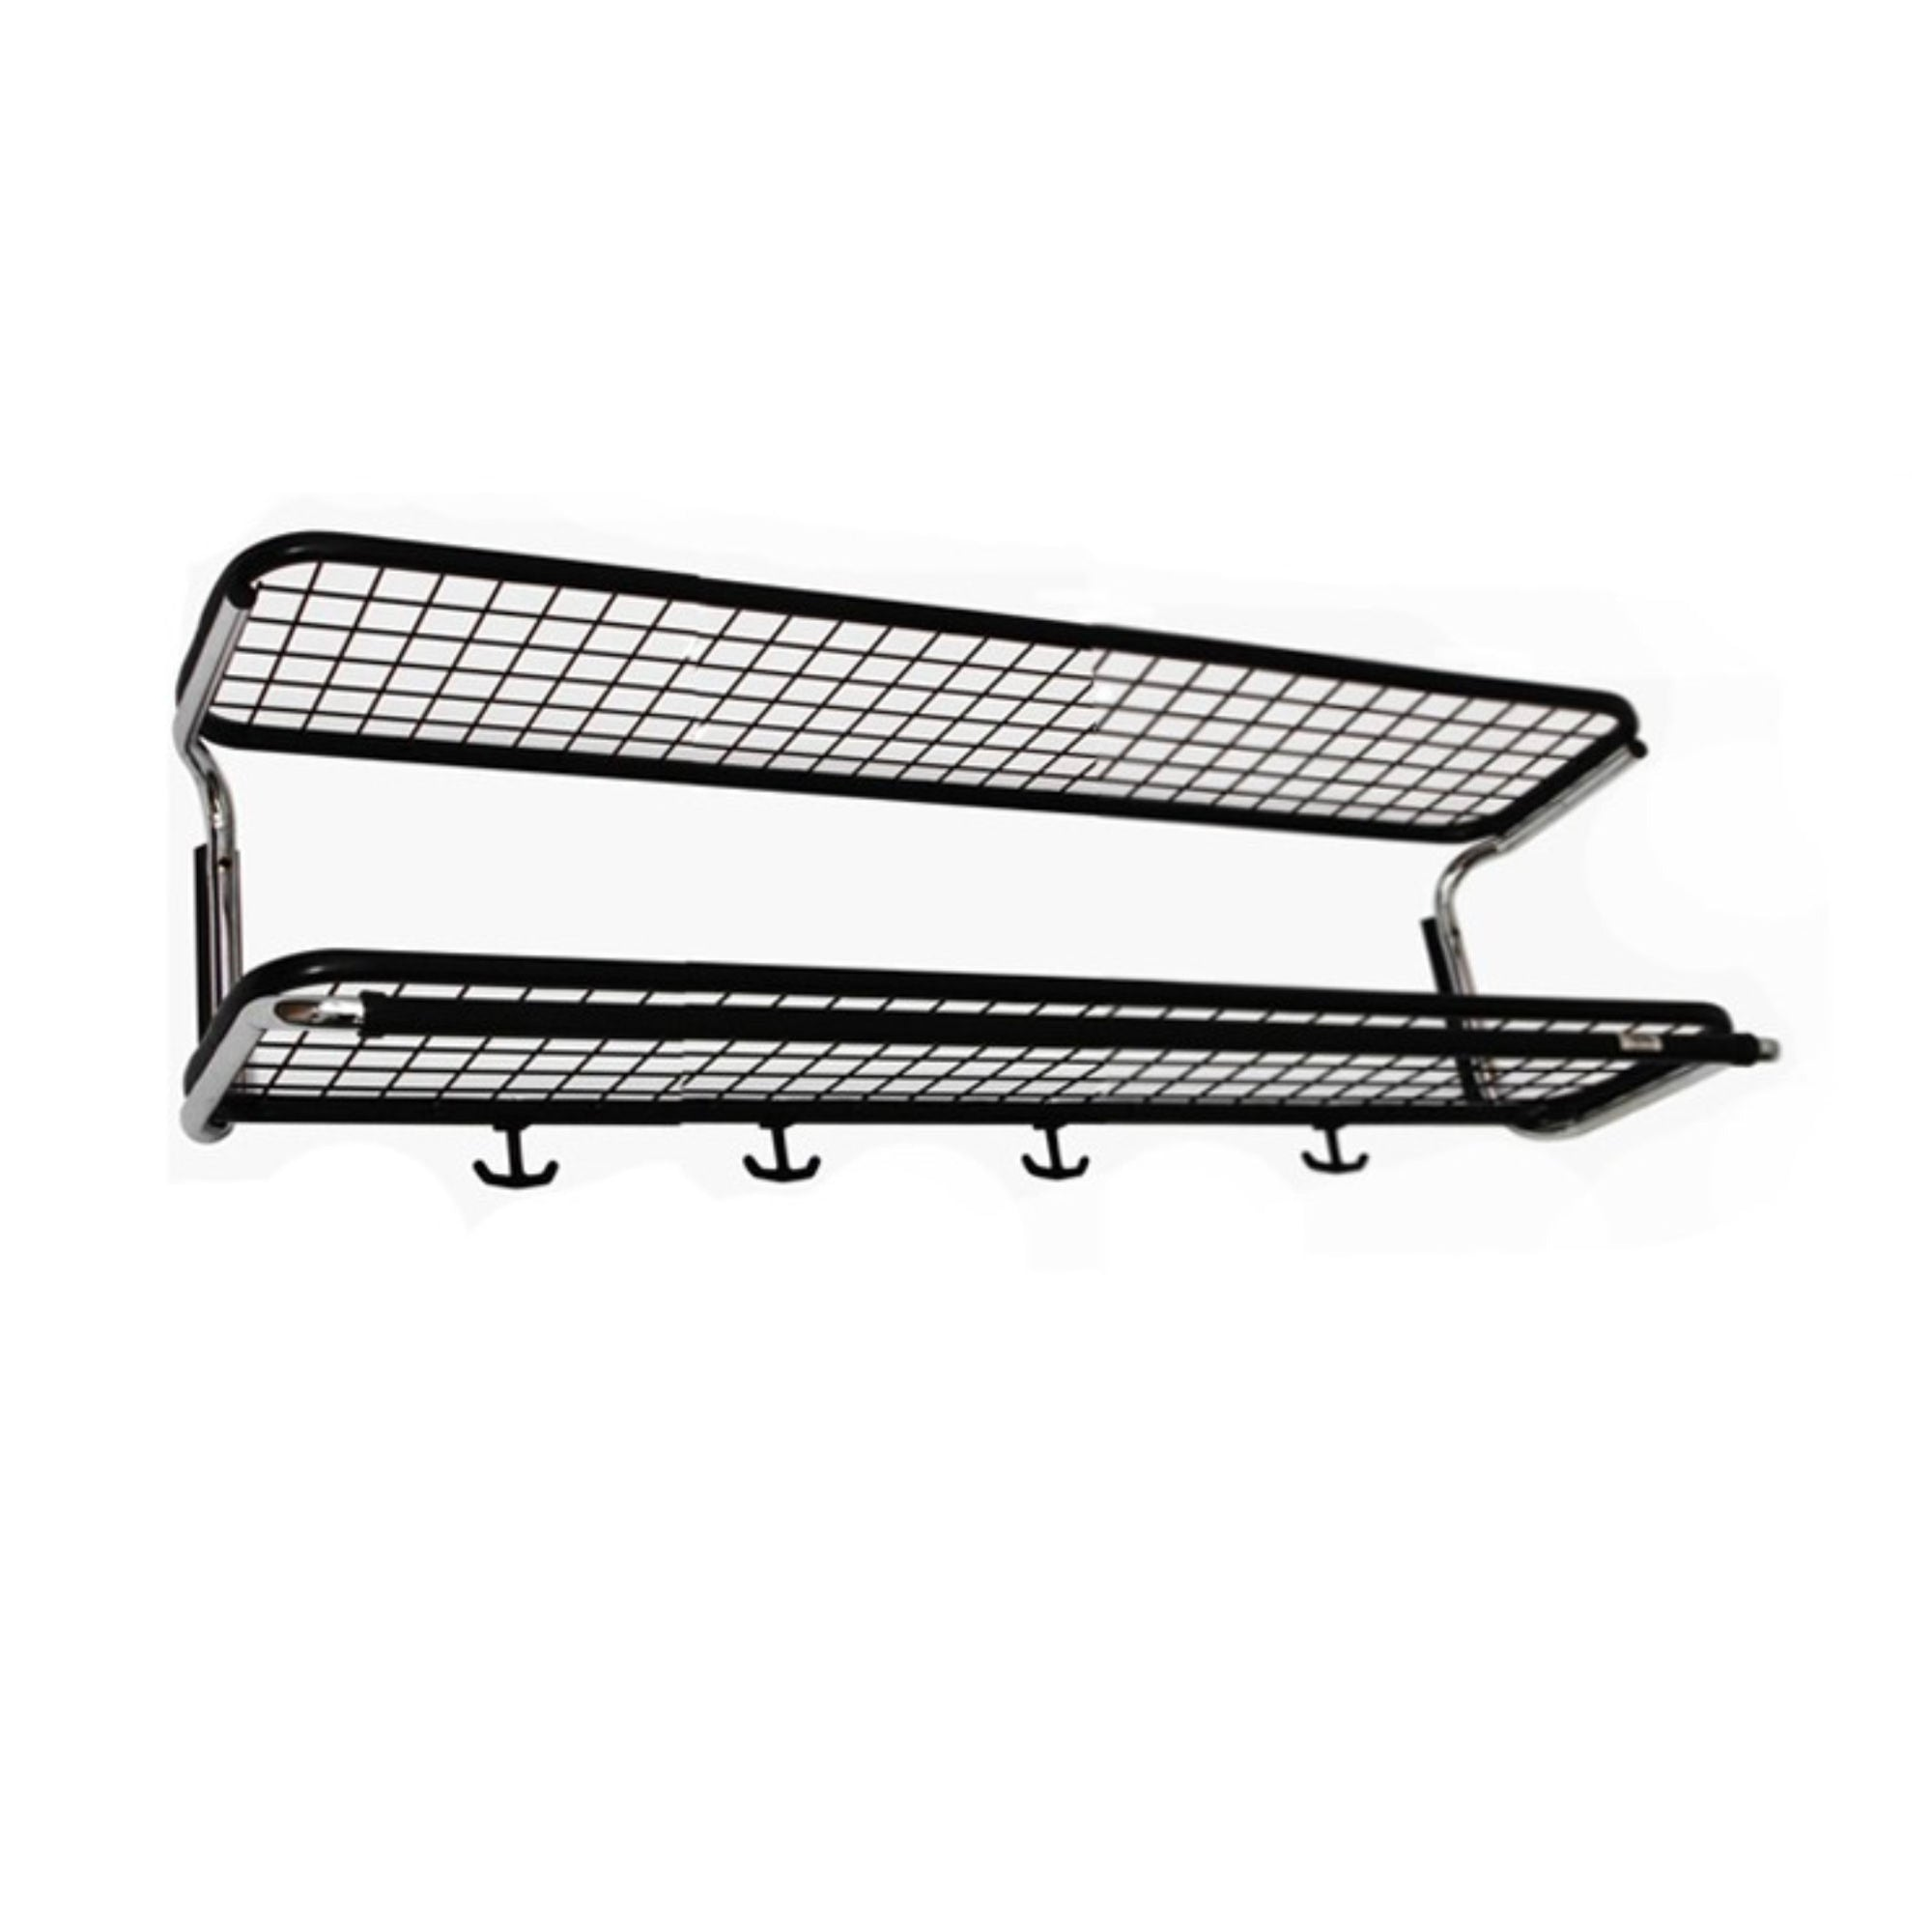 Essem Design Classic 650s hat rack, black chrome